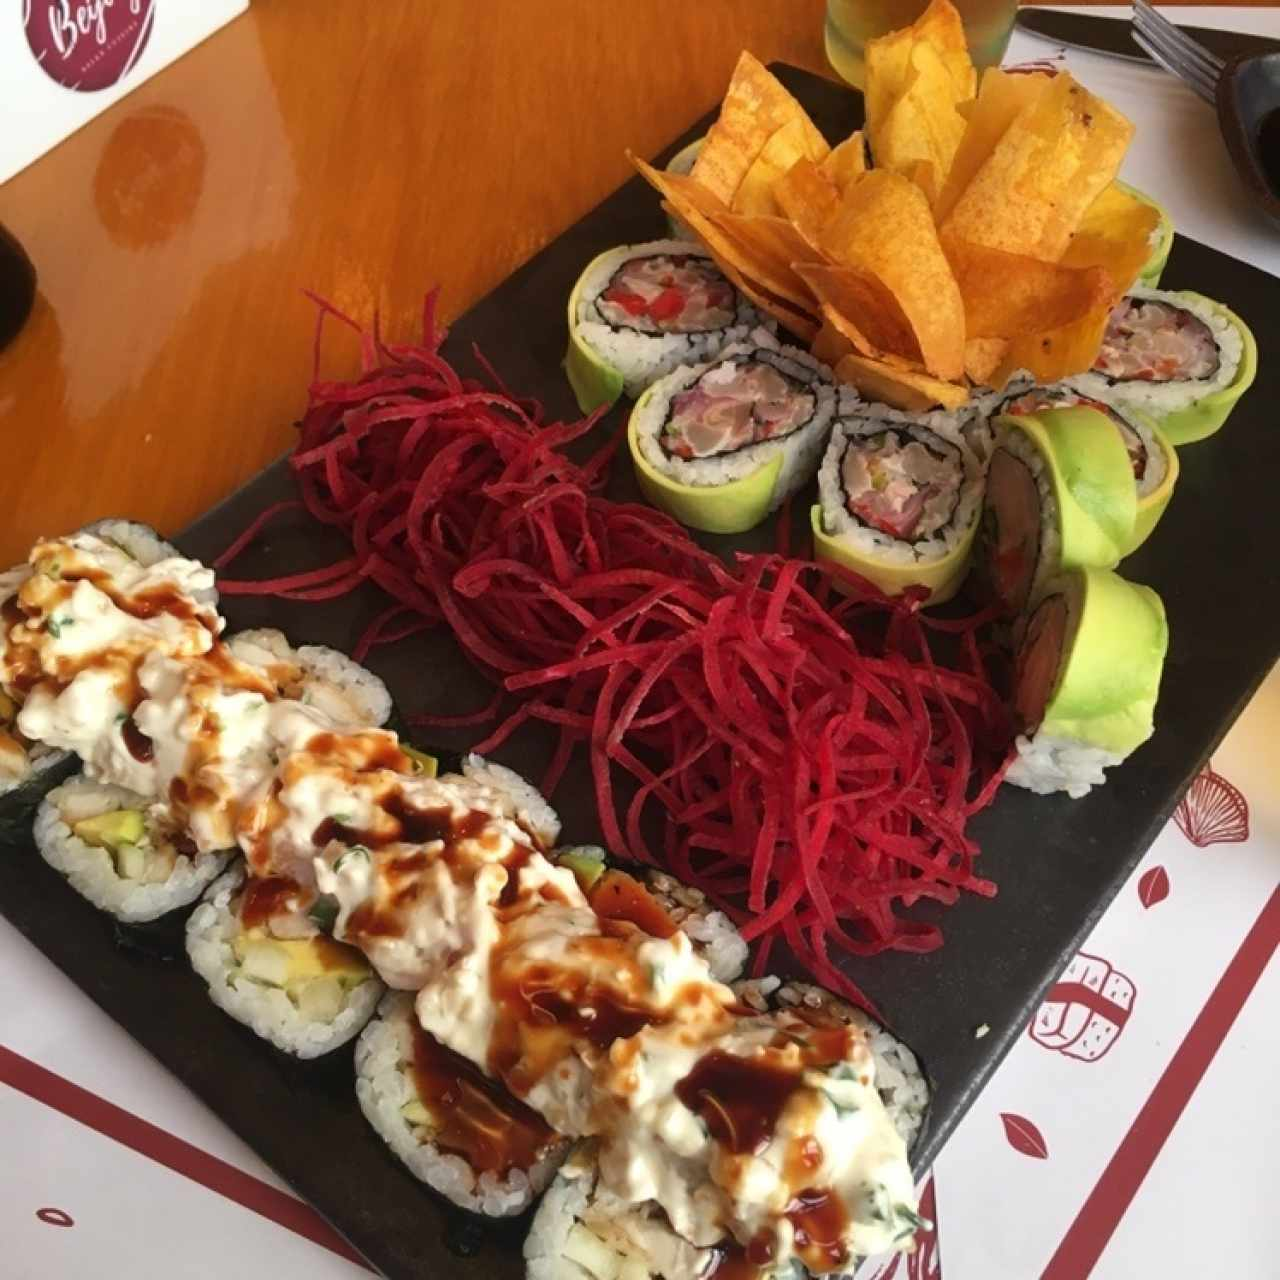 SUSHI ROLLS/MAKIS/PREMIUMS - Ceviche Roll